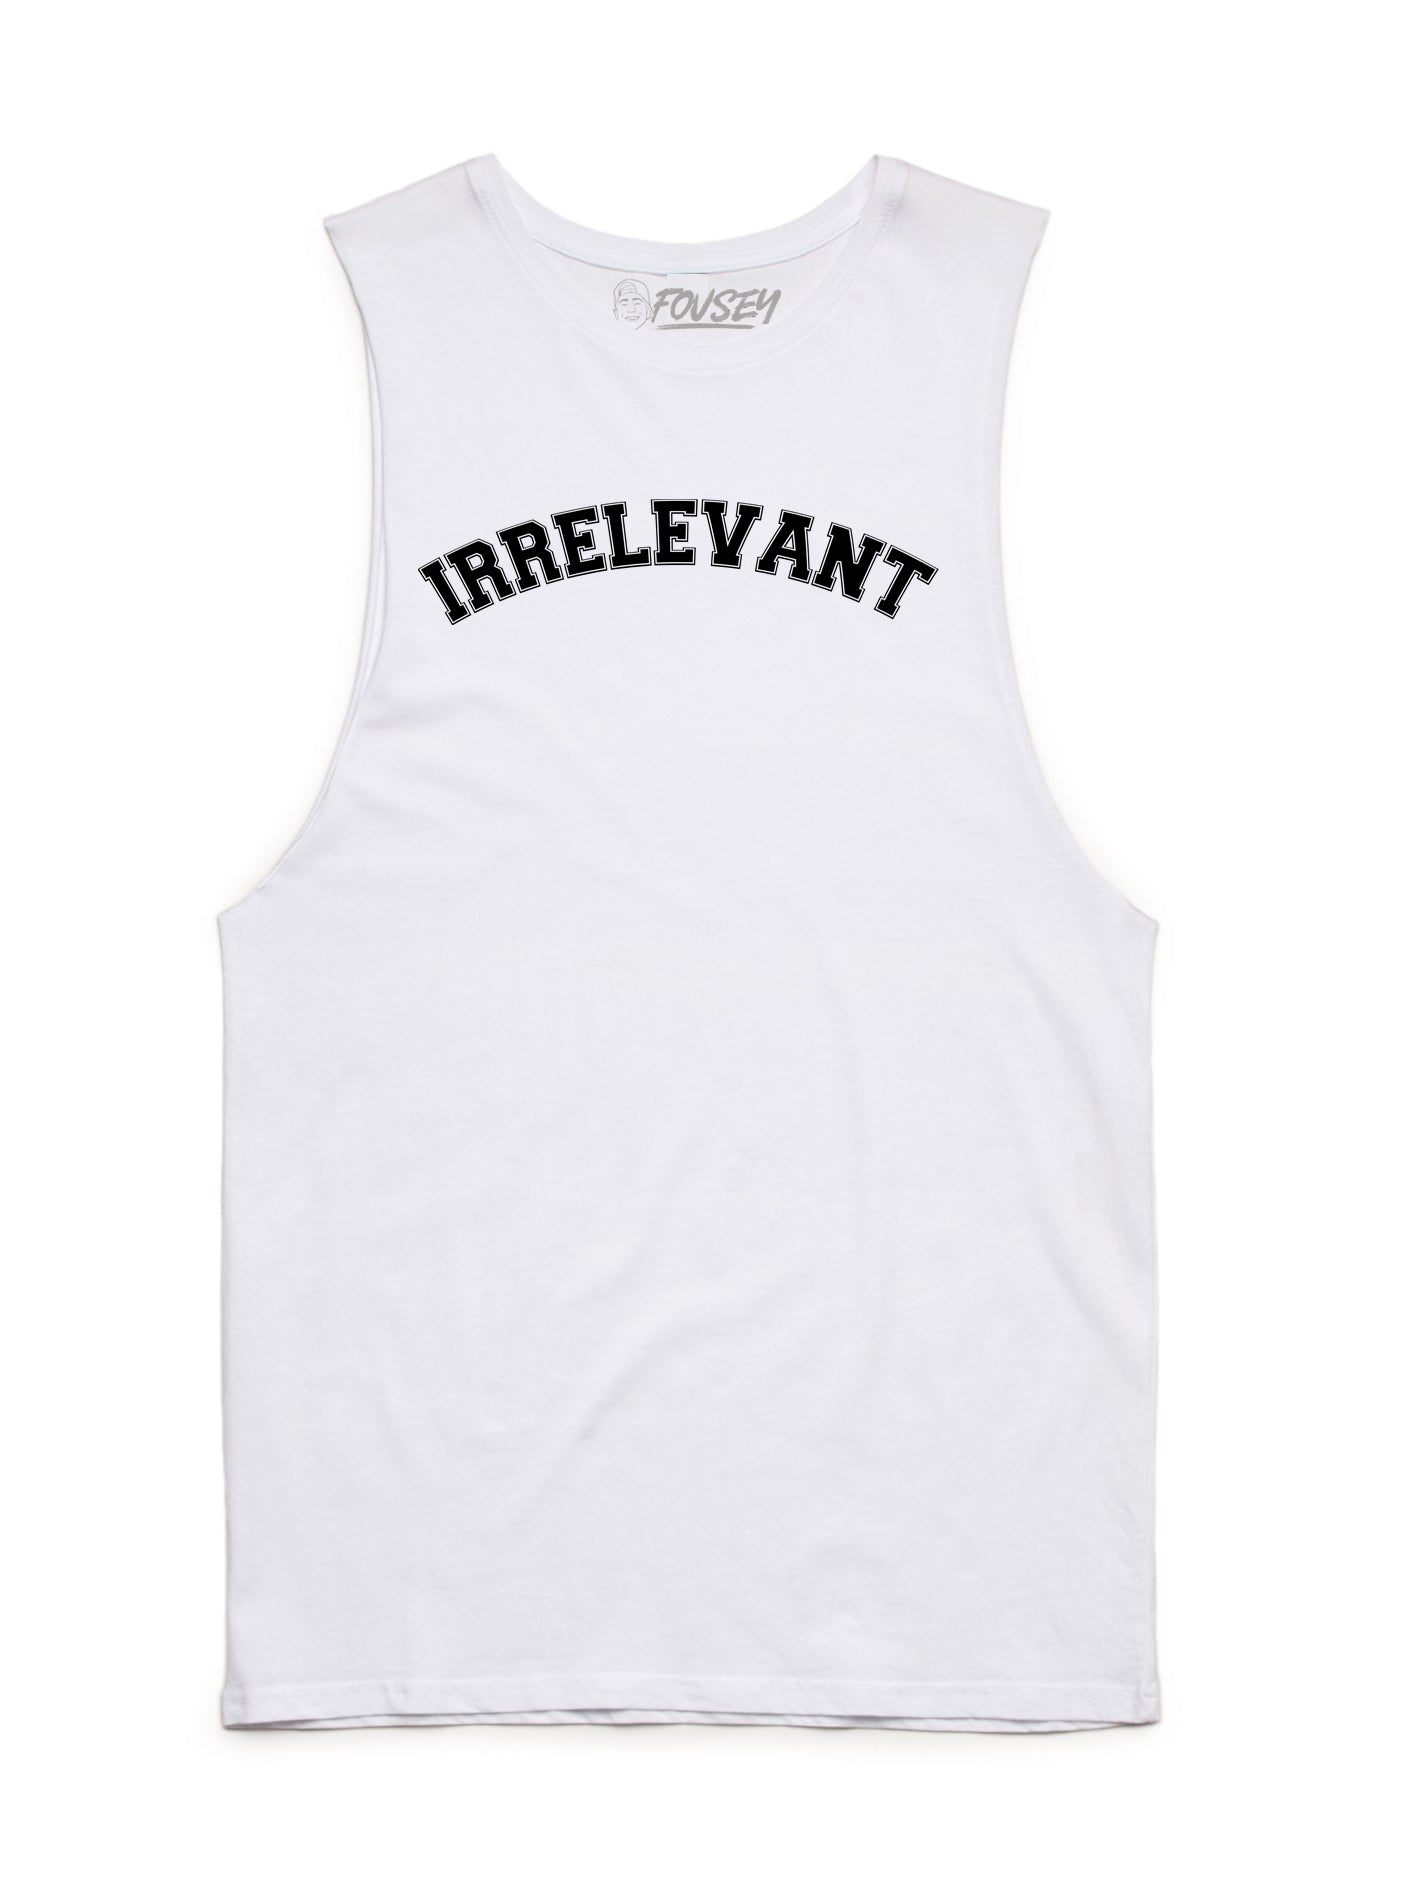 Irrelevant Muscle Tank Top - White